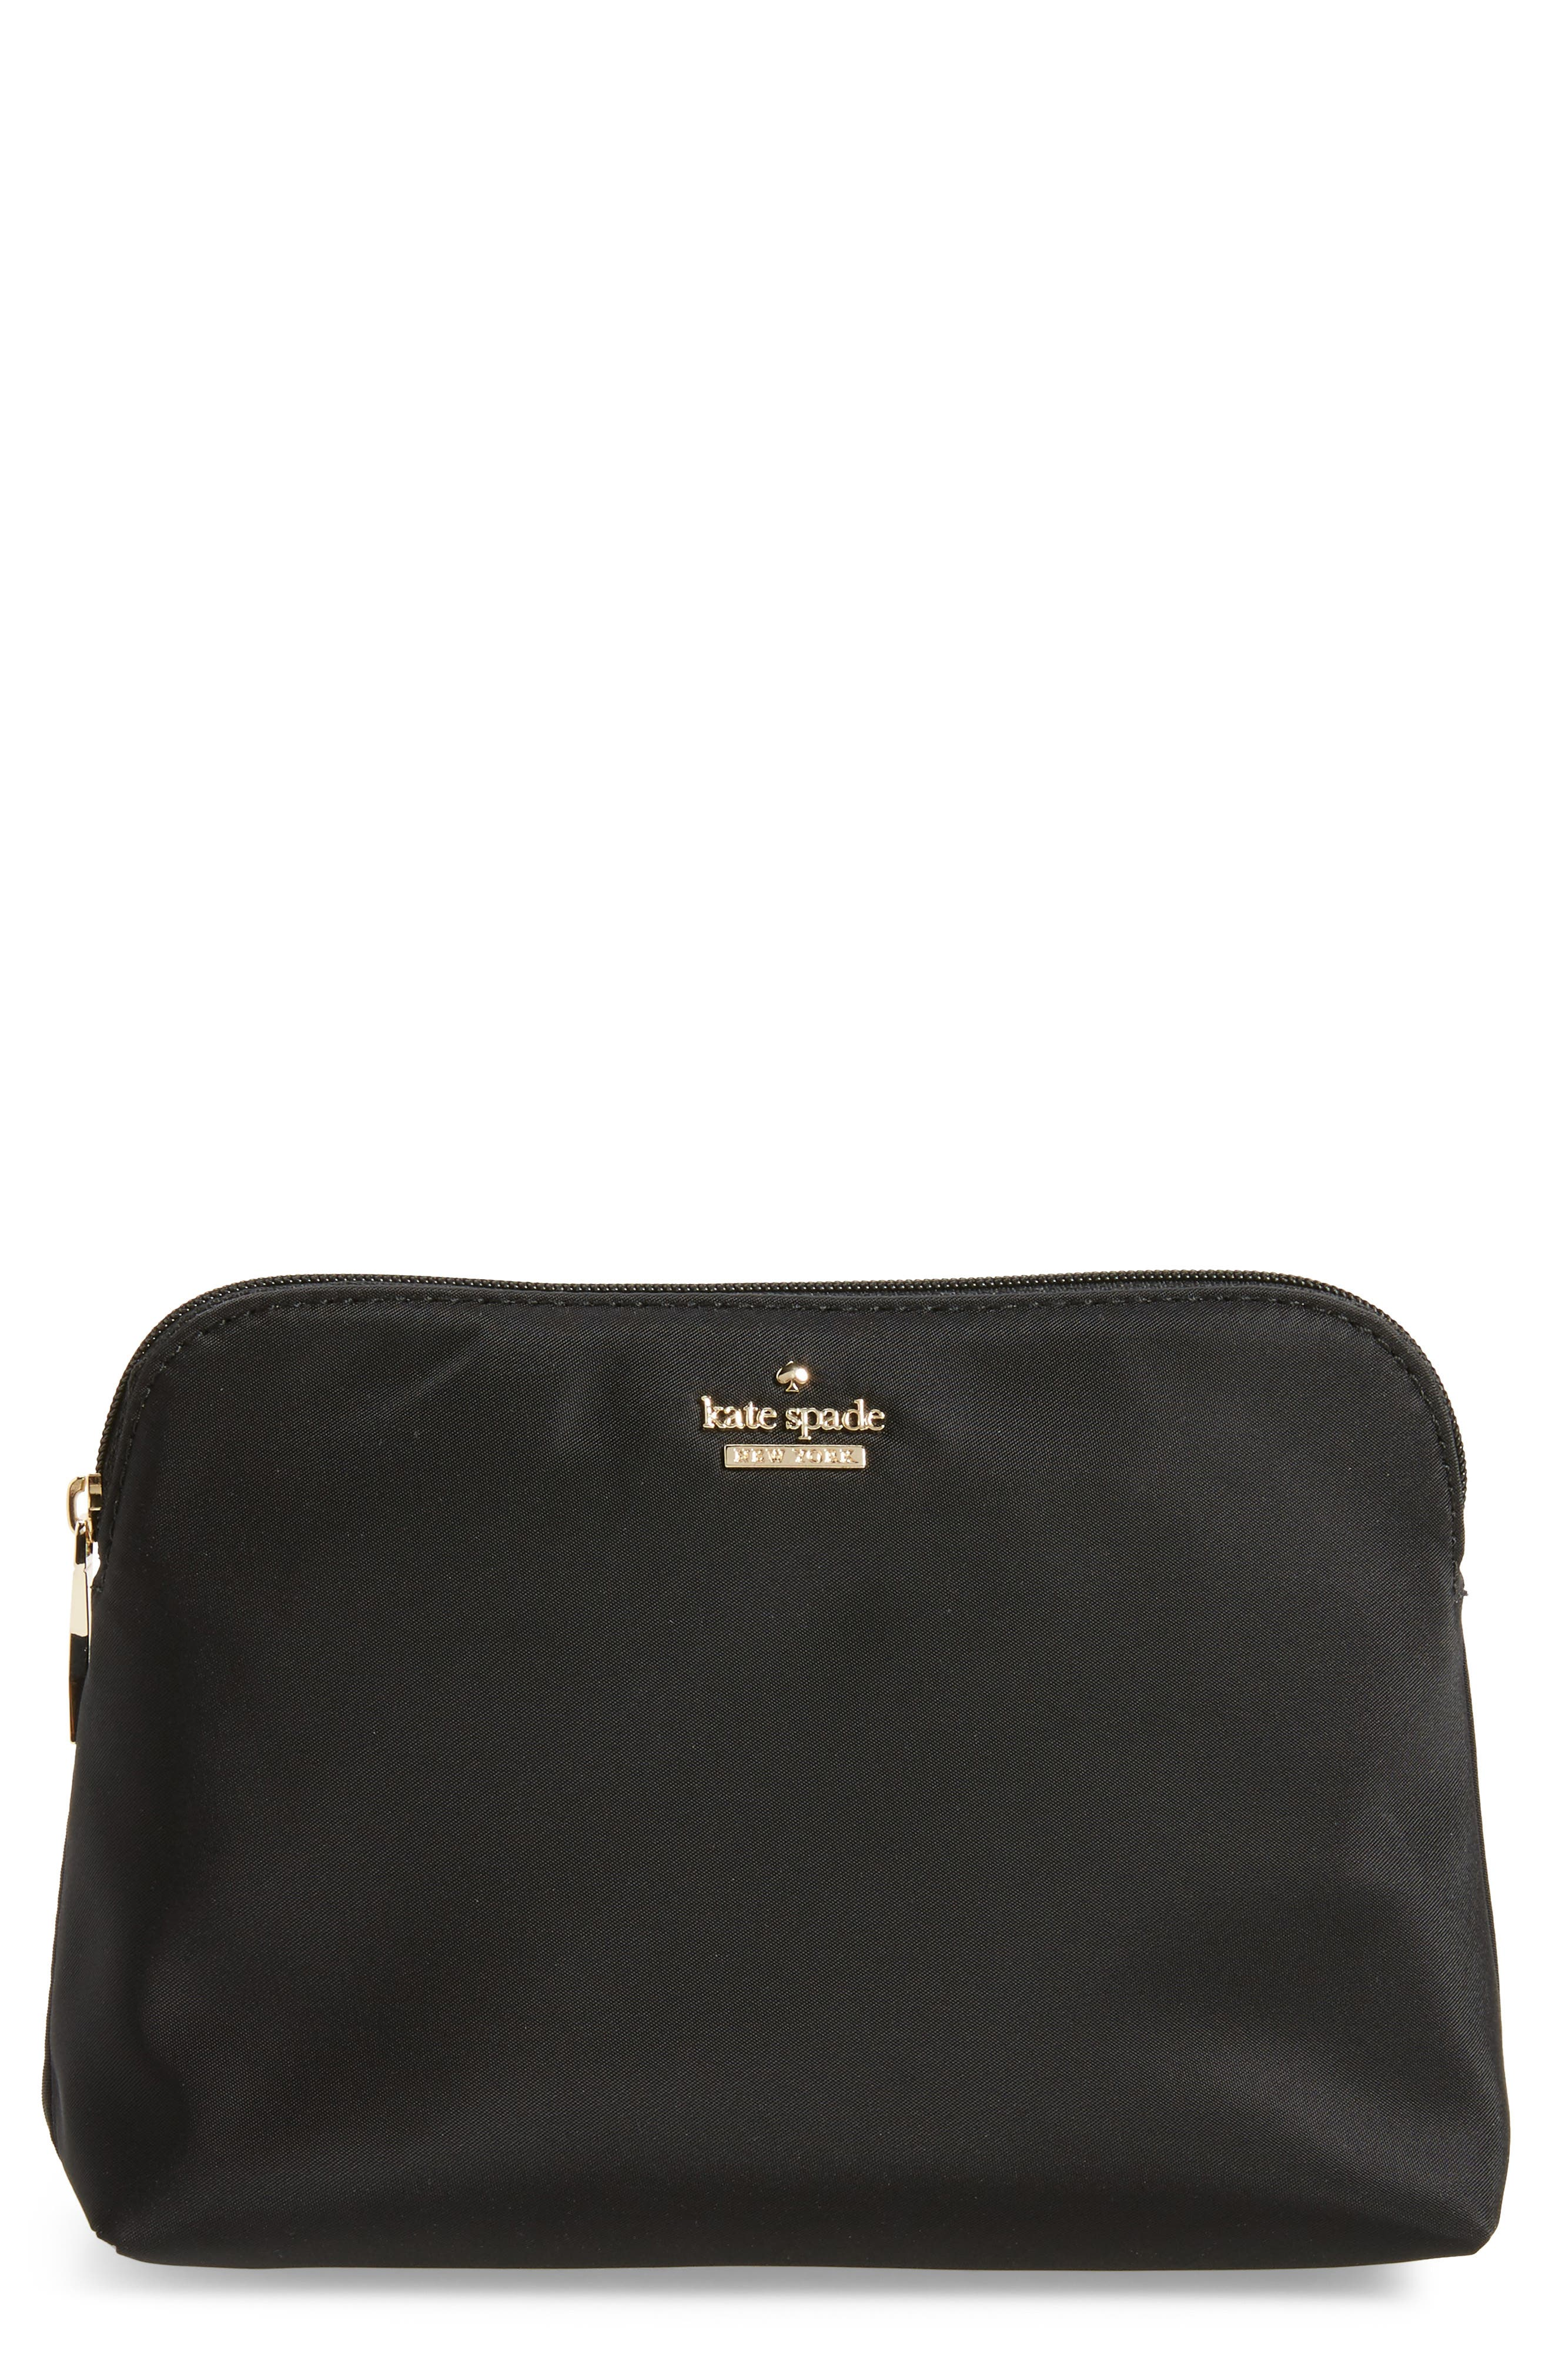 Alternate Image 1 Selected - kate spade new york small classic briley nylon cosmetics case